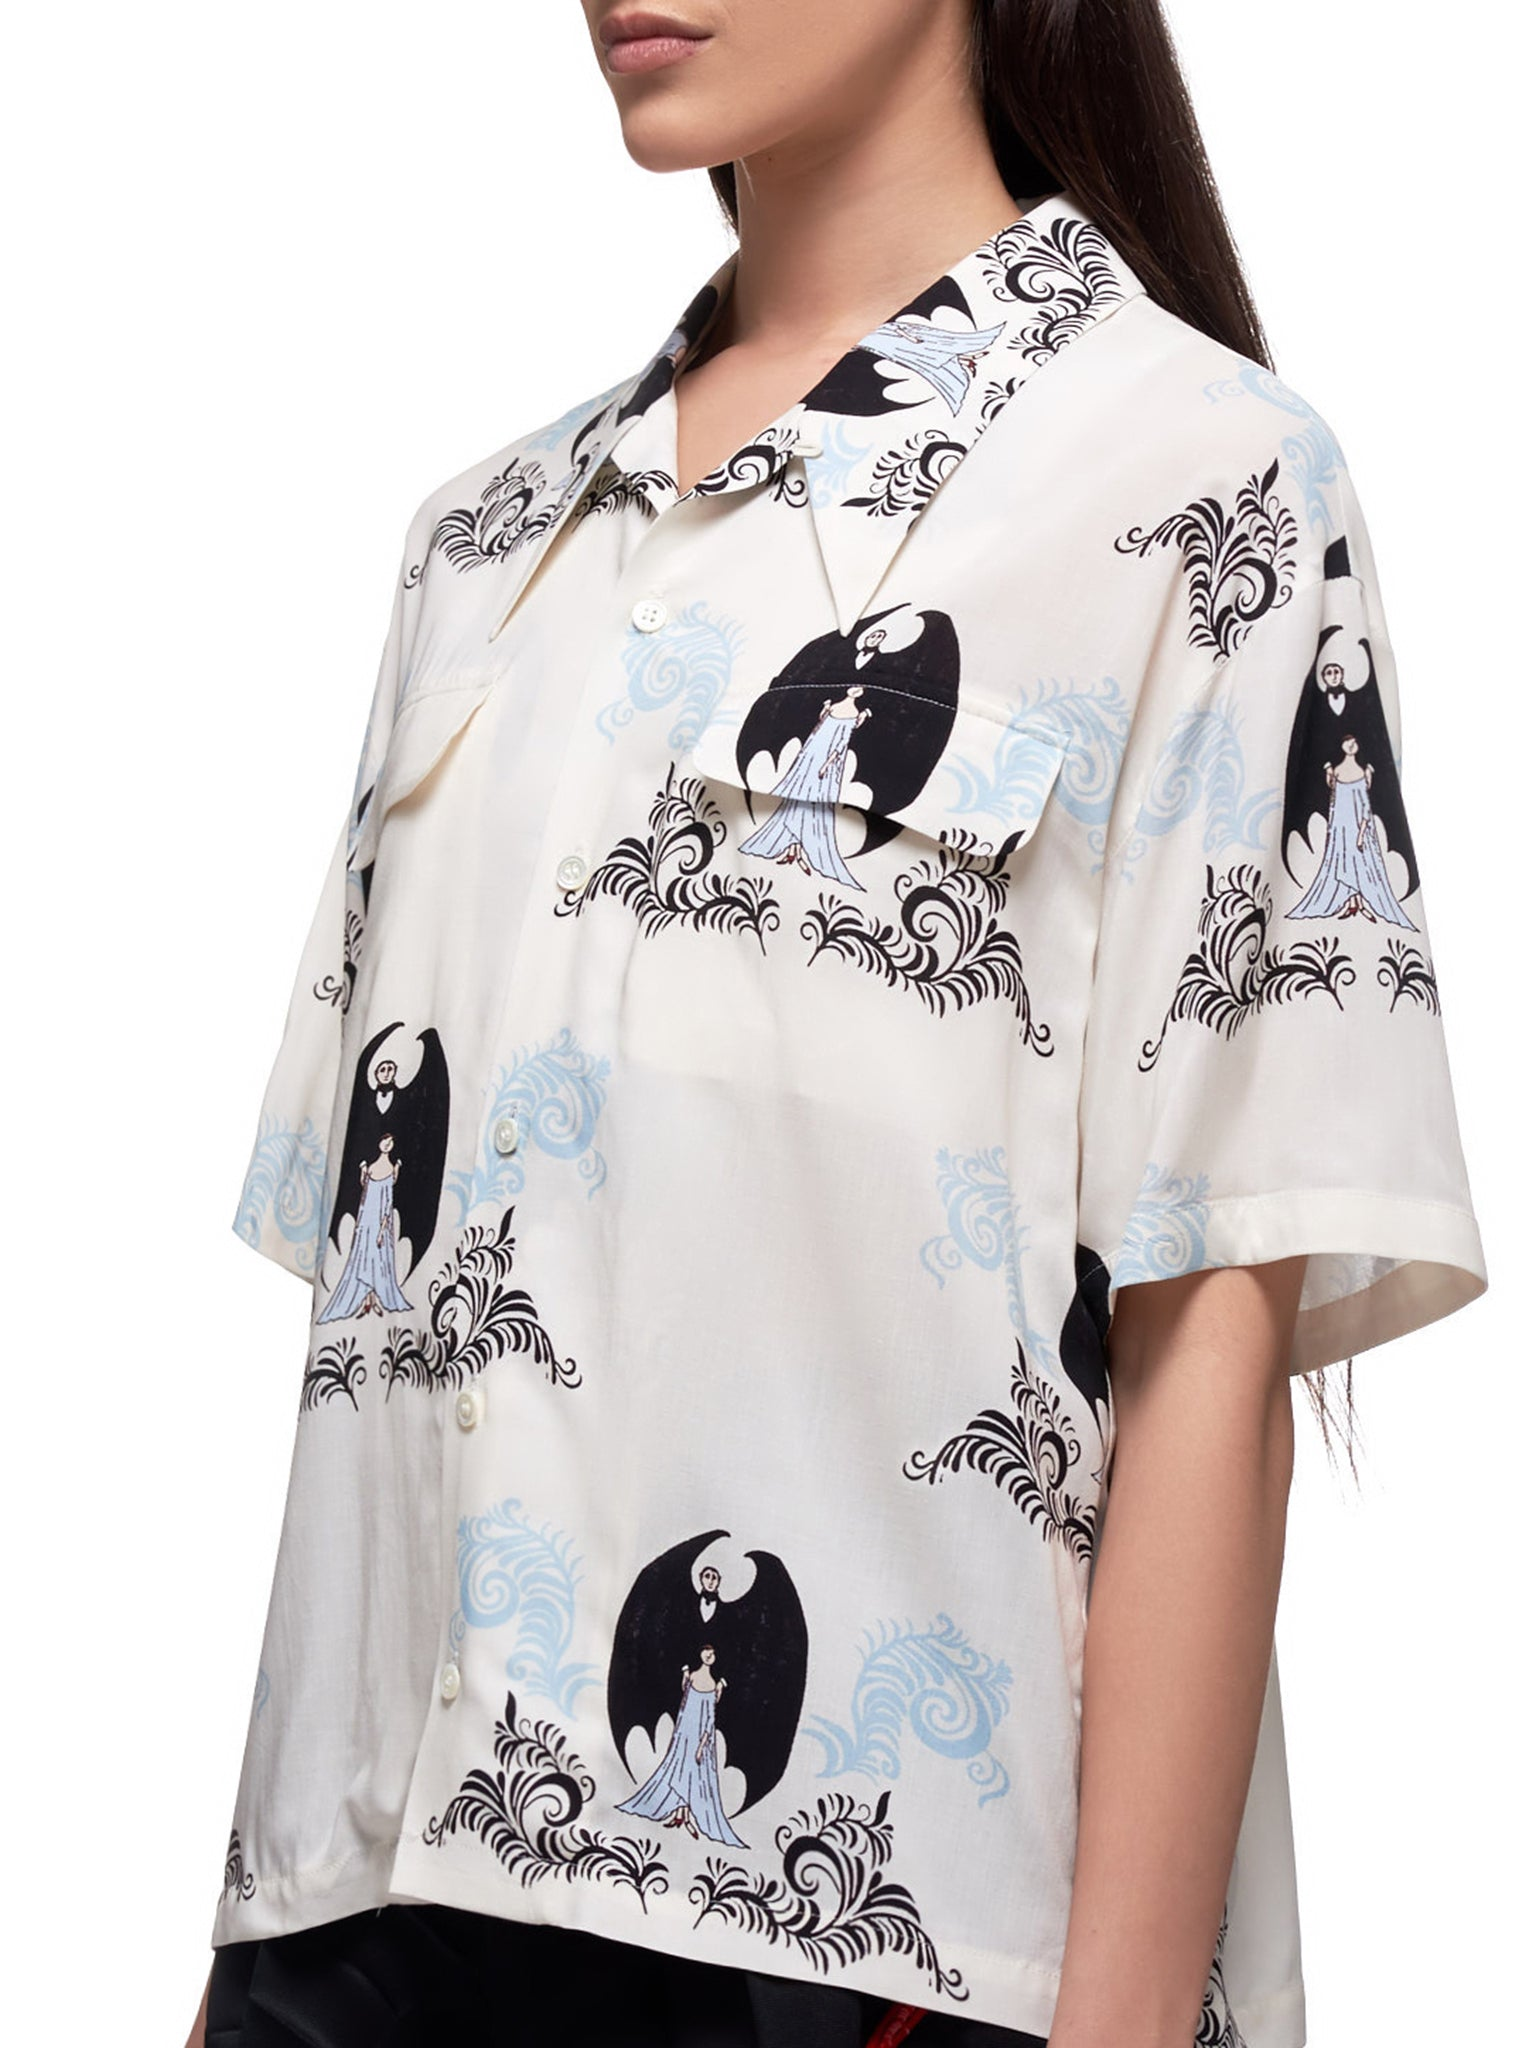 Graphic Short Sleeve Button Down Shirt (UCY1405-2-WHITE)